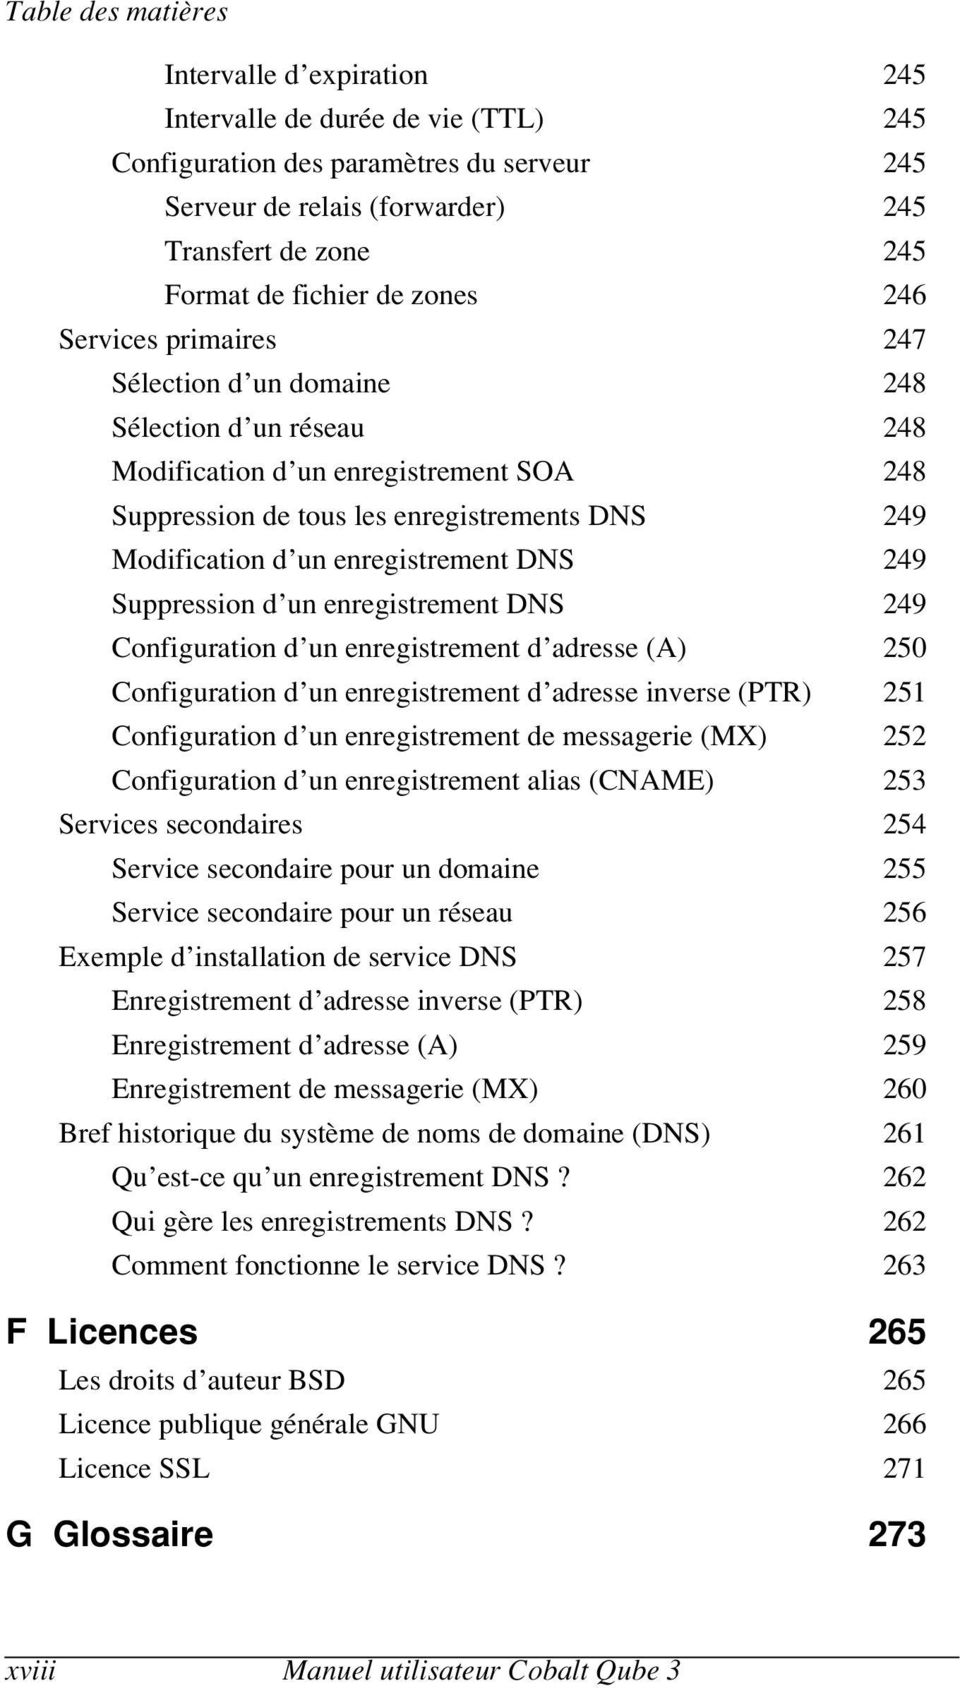 d un enregistrement DNS 249 Suppression d un enregistrement DNS 249 Configuration d un enregistrement d adresse (A) 250 Configuration d un enregistrement d adresse inverse (PTR) 251 Configuration d